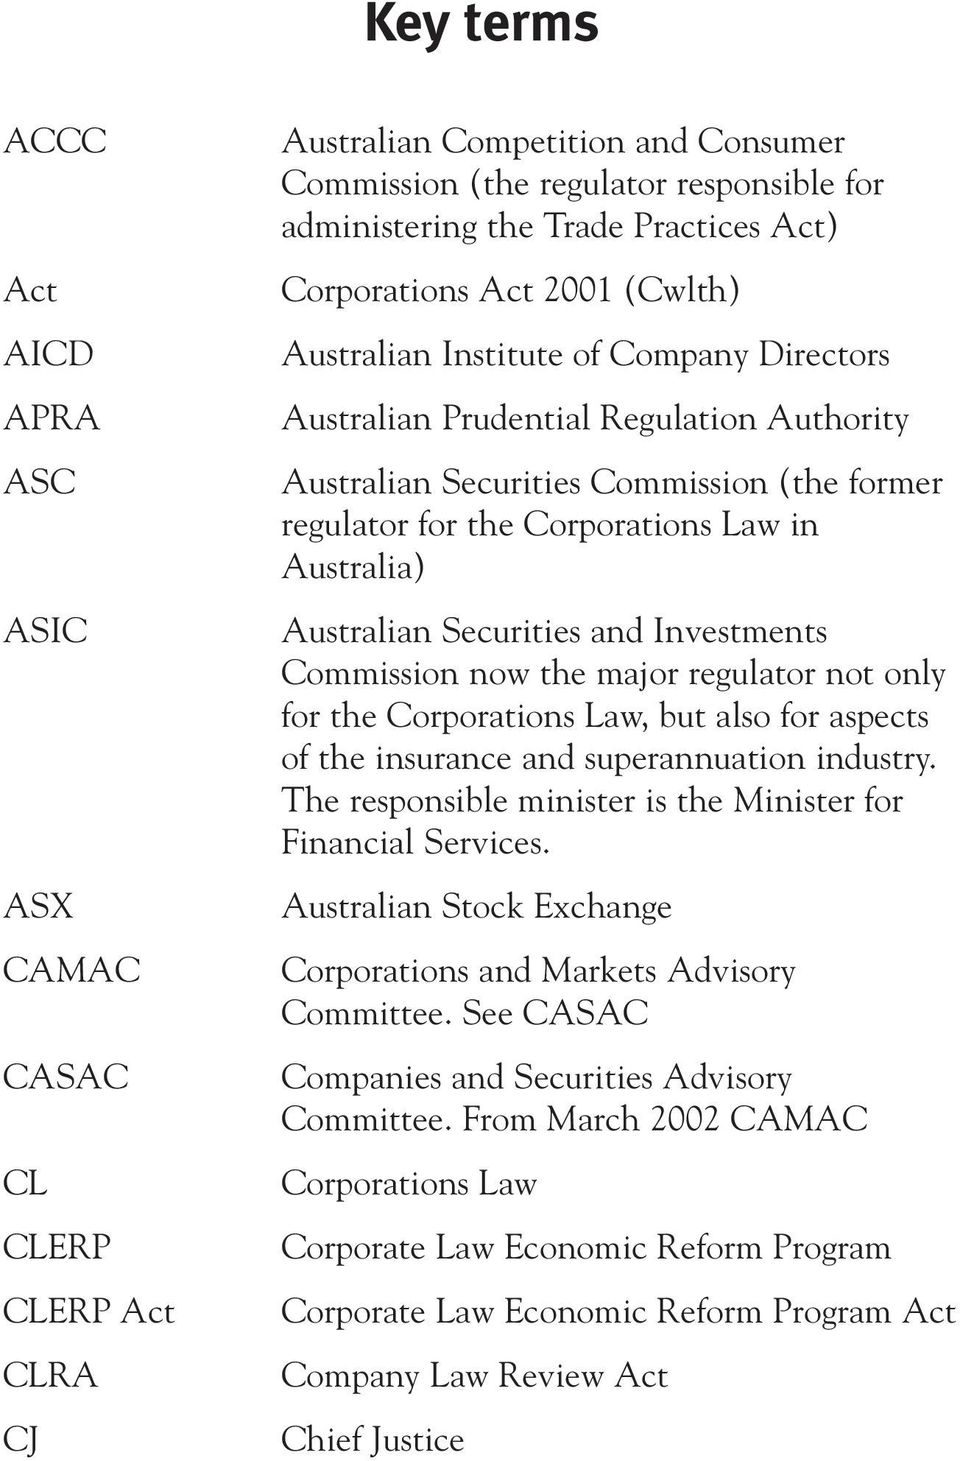 Australia) Australian Securities and Investments Commission now the major regulator not only for the Corporations Law, but also for aspects of the insurance and superannuation industry.